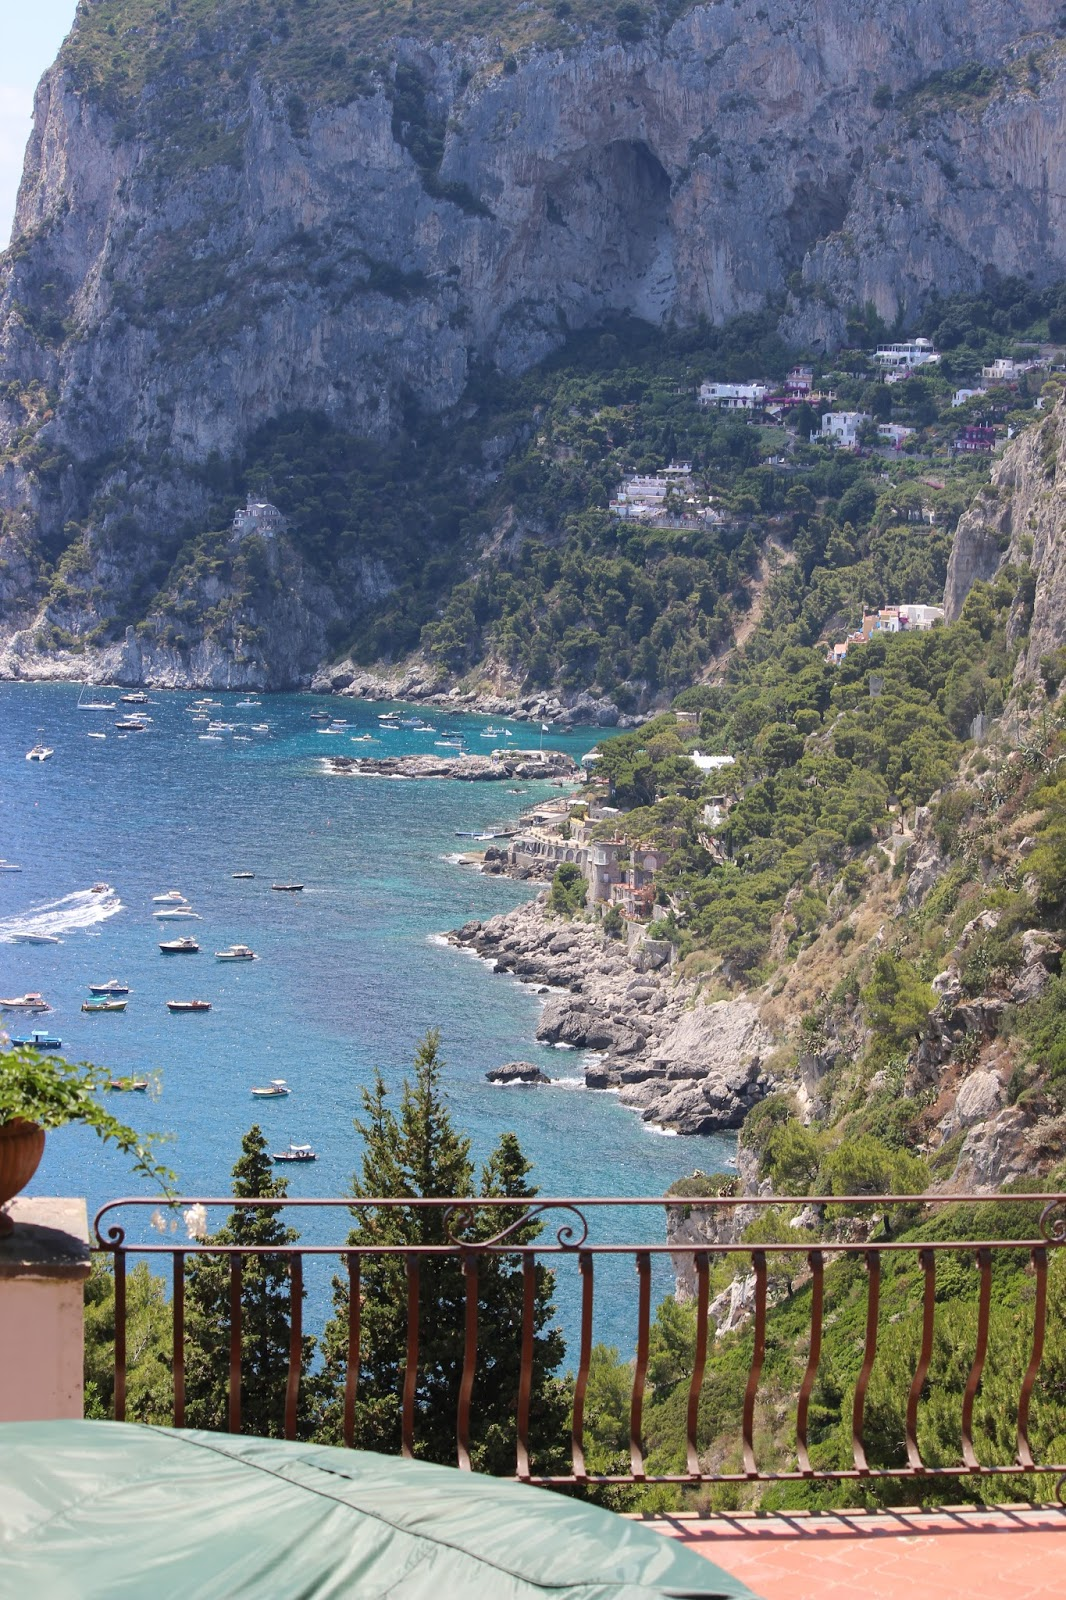 Isle of Capri, Italy